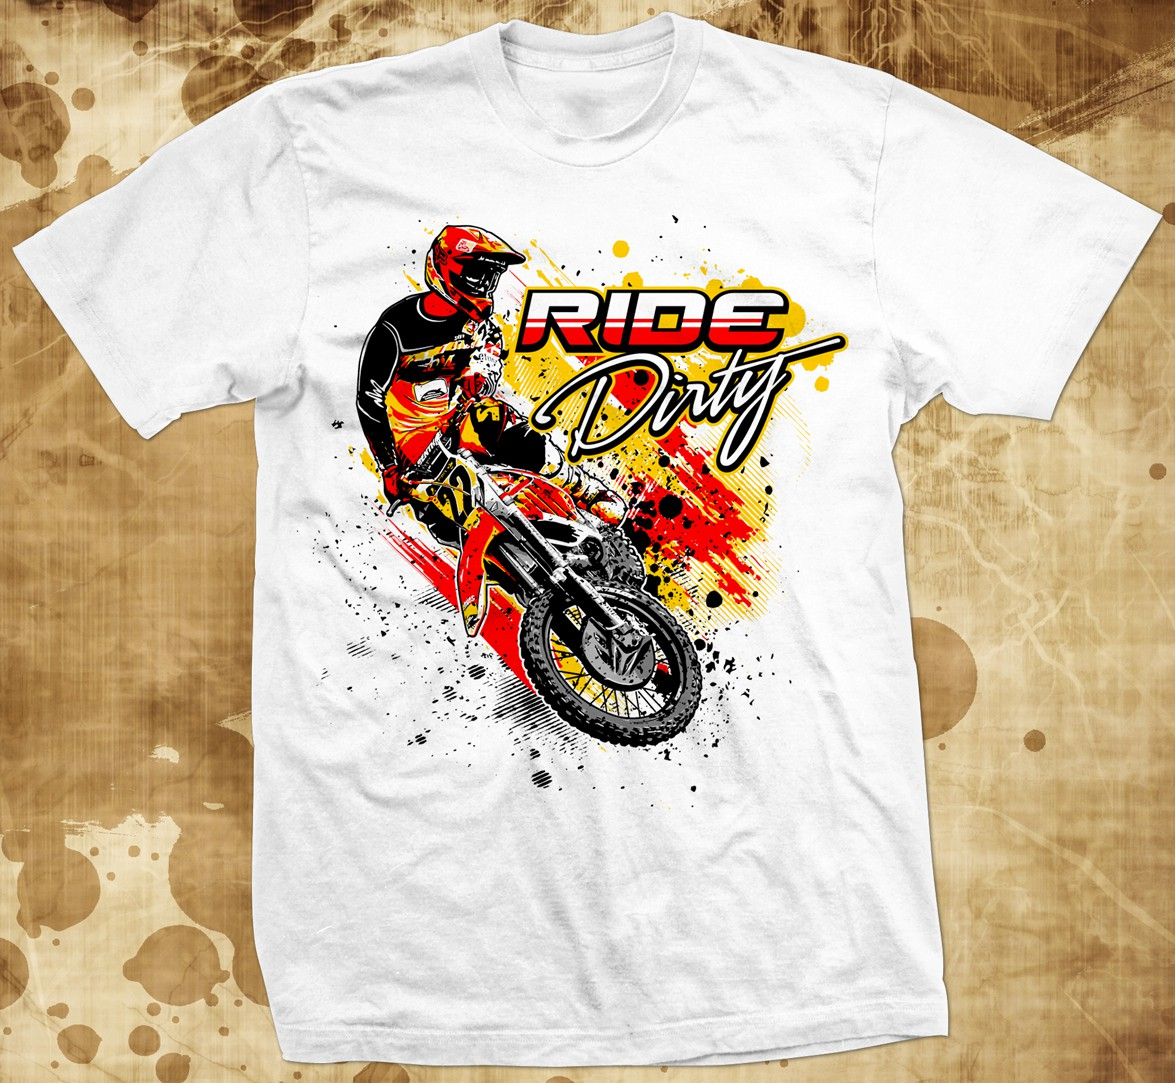 New t-shirt design wanted for RIde Dirty